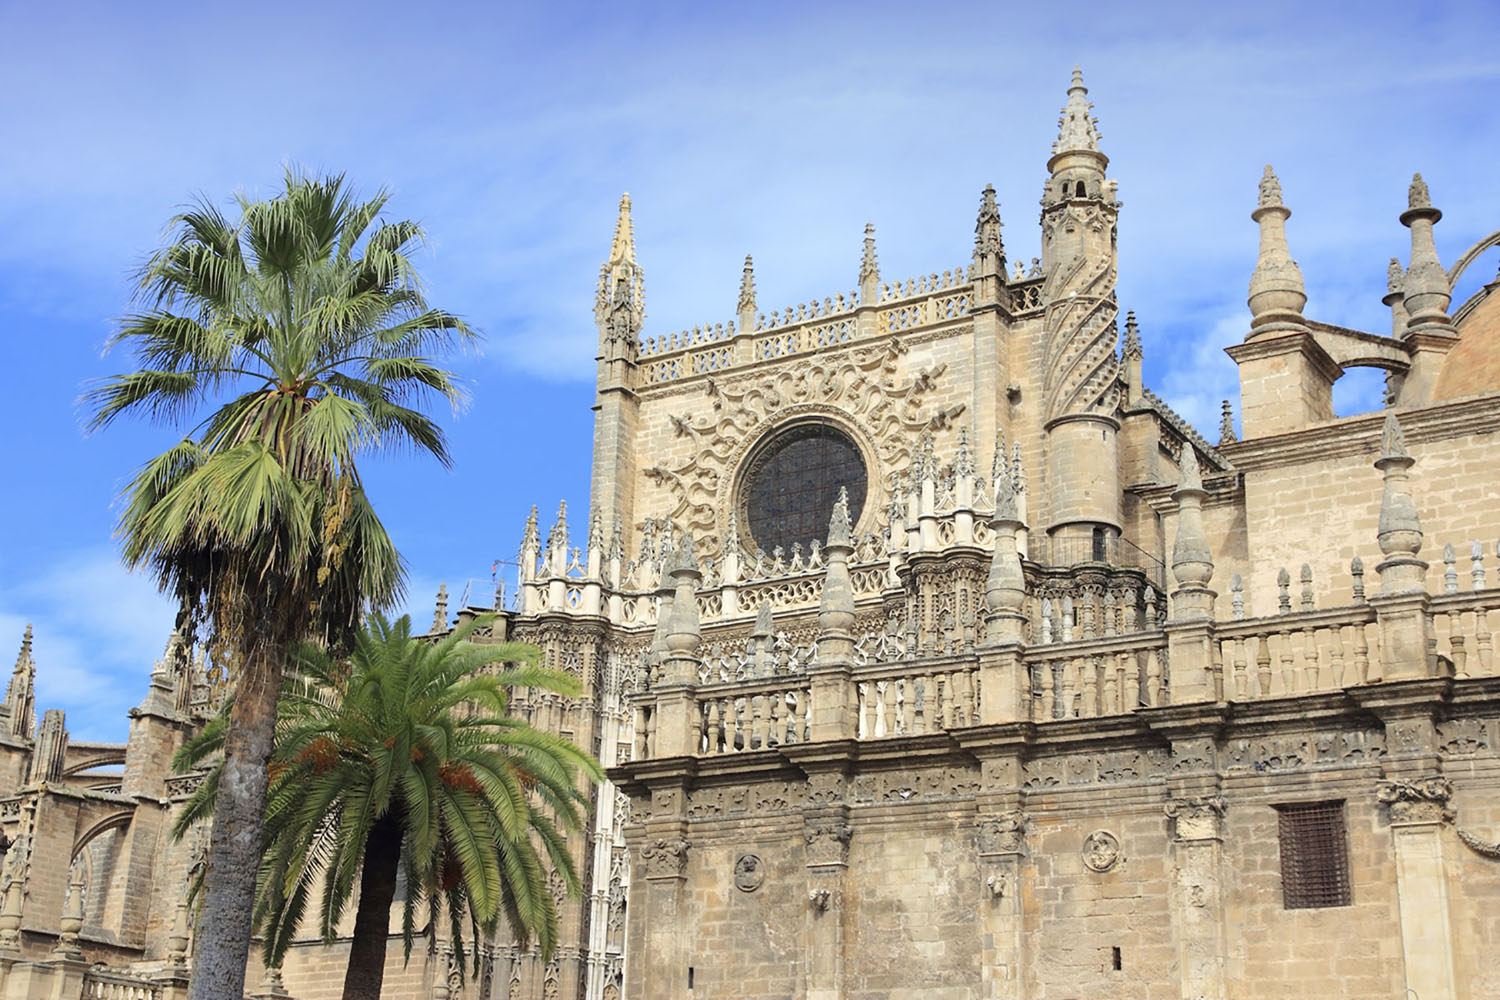 Seville Cathedral's bell tower, La Giralda, is Seville's most famous landmark.